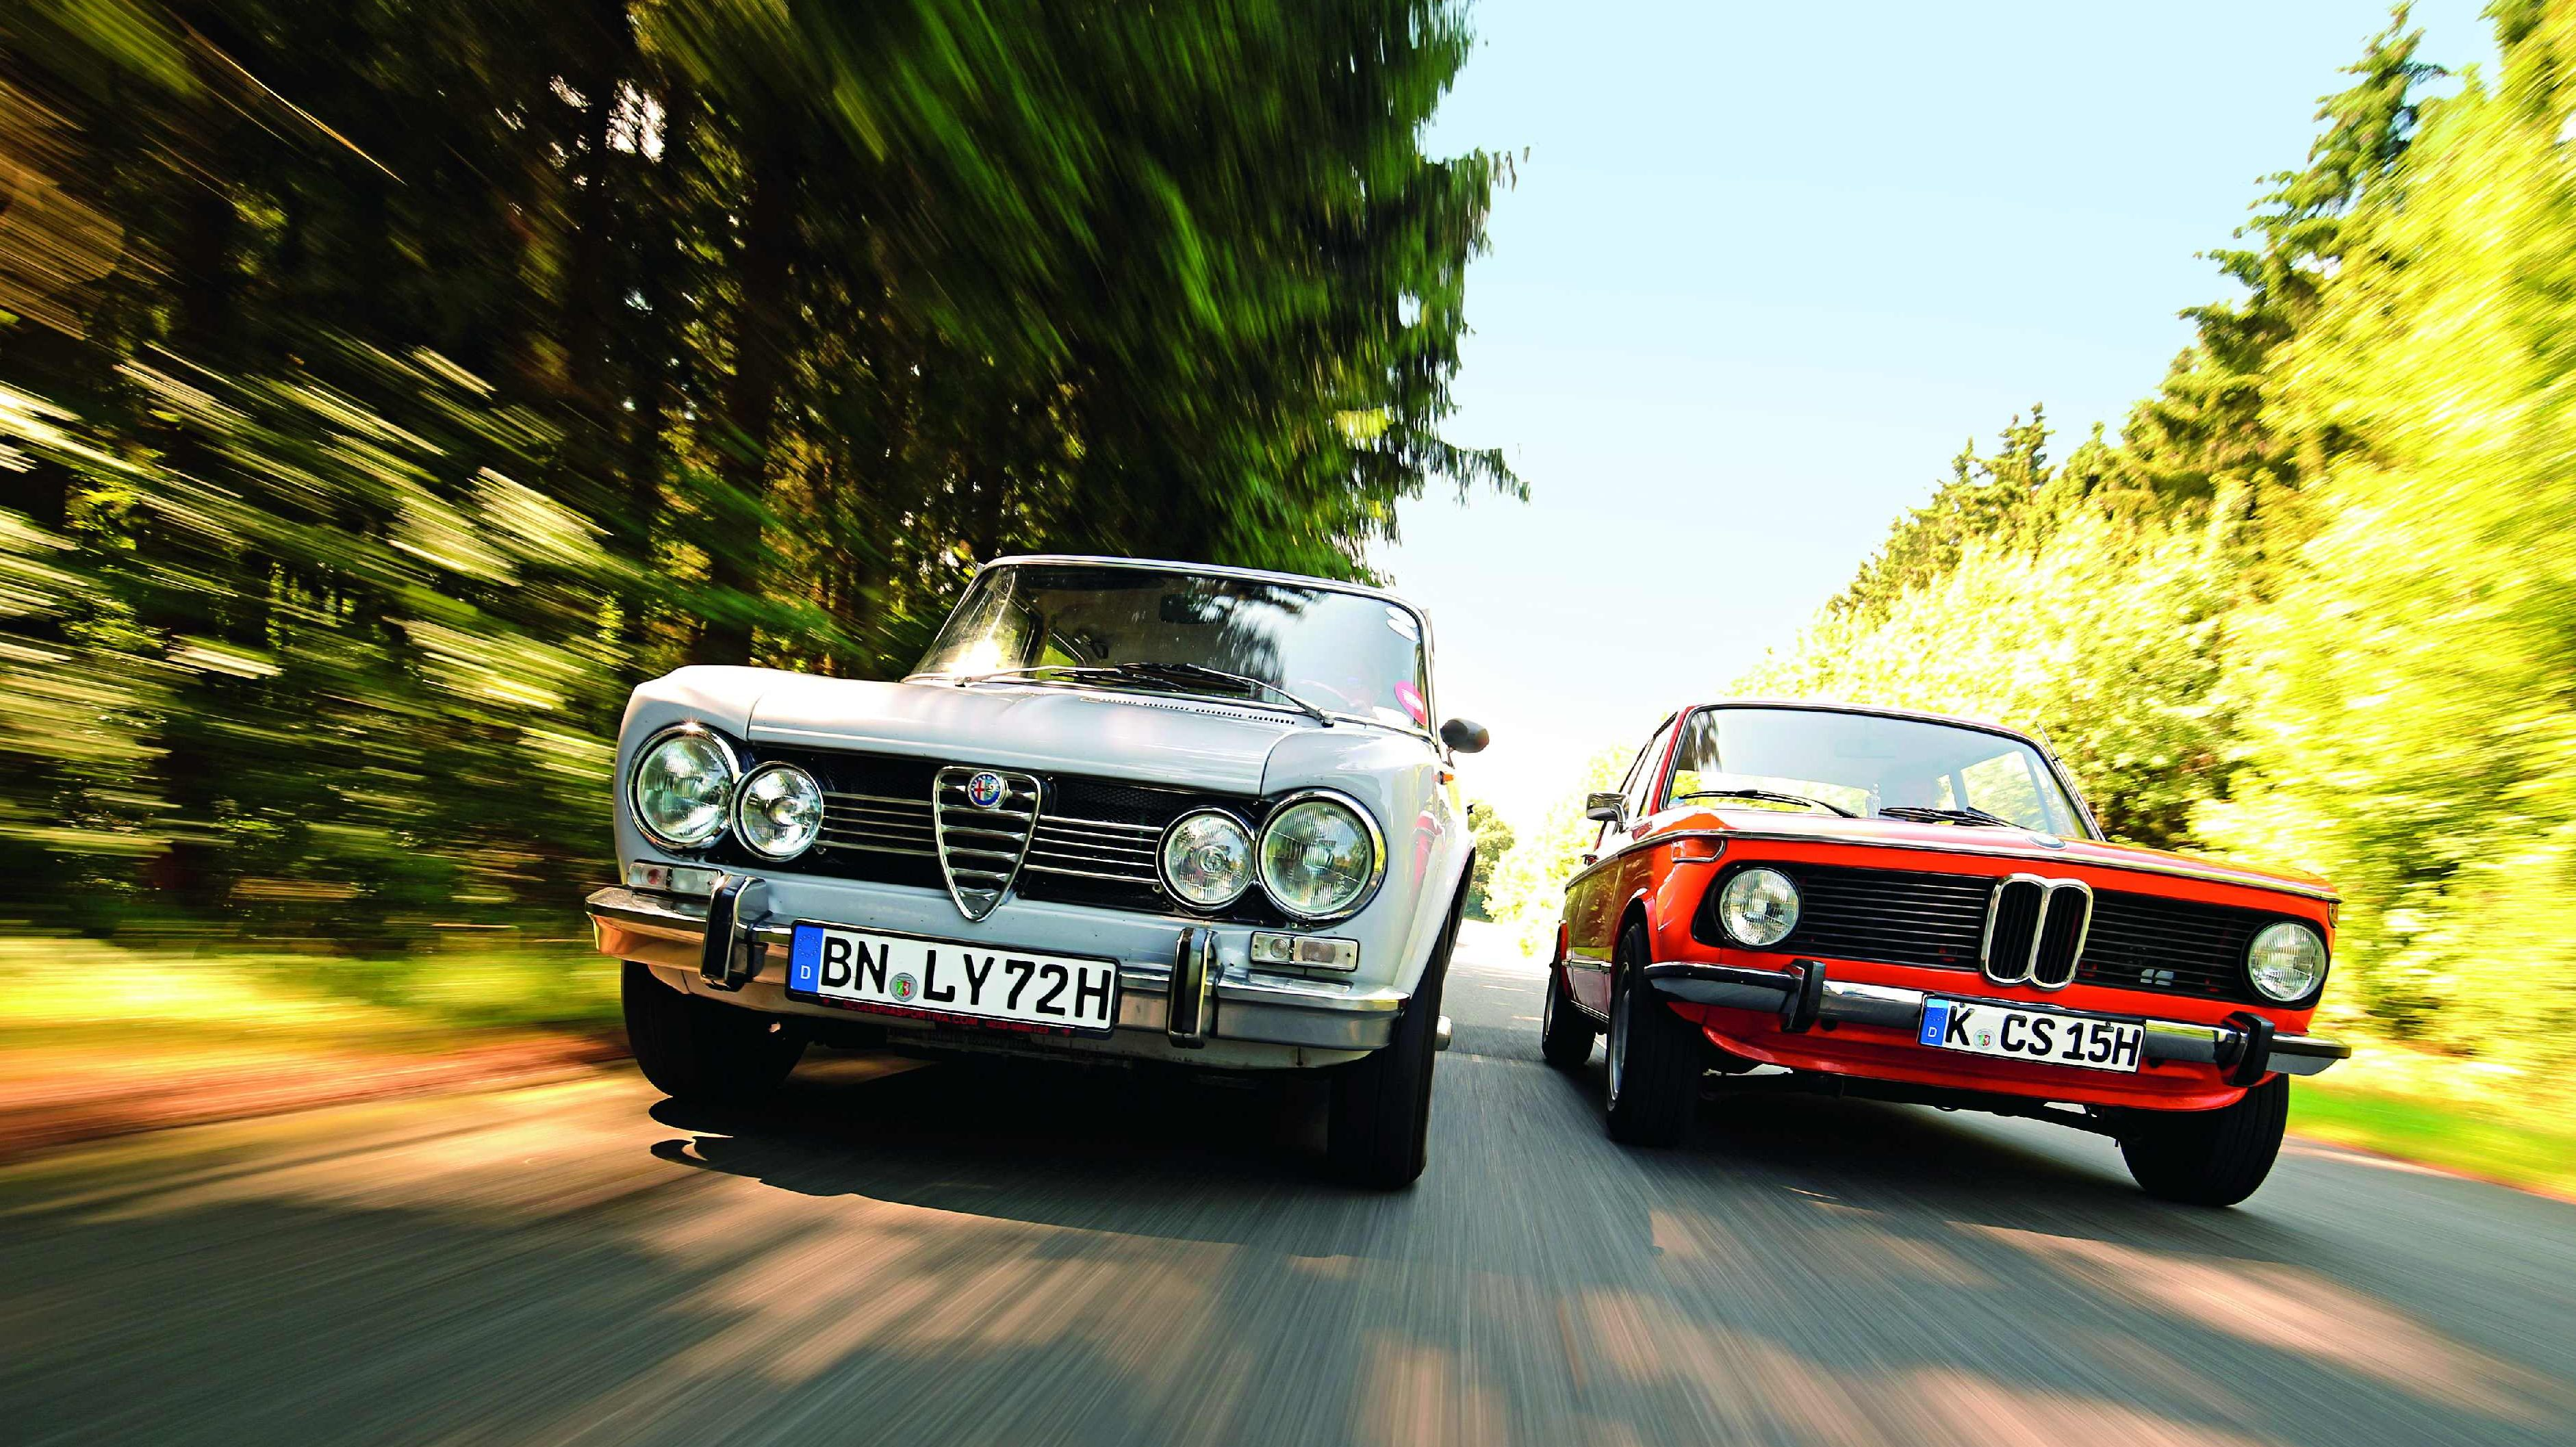 Image for Alfa Romeo Giulia Super 1.3 vs. BMW 1602. Par iz snova!